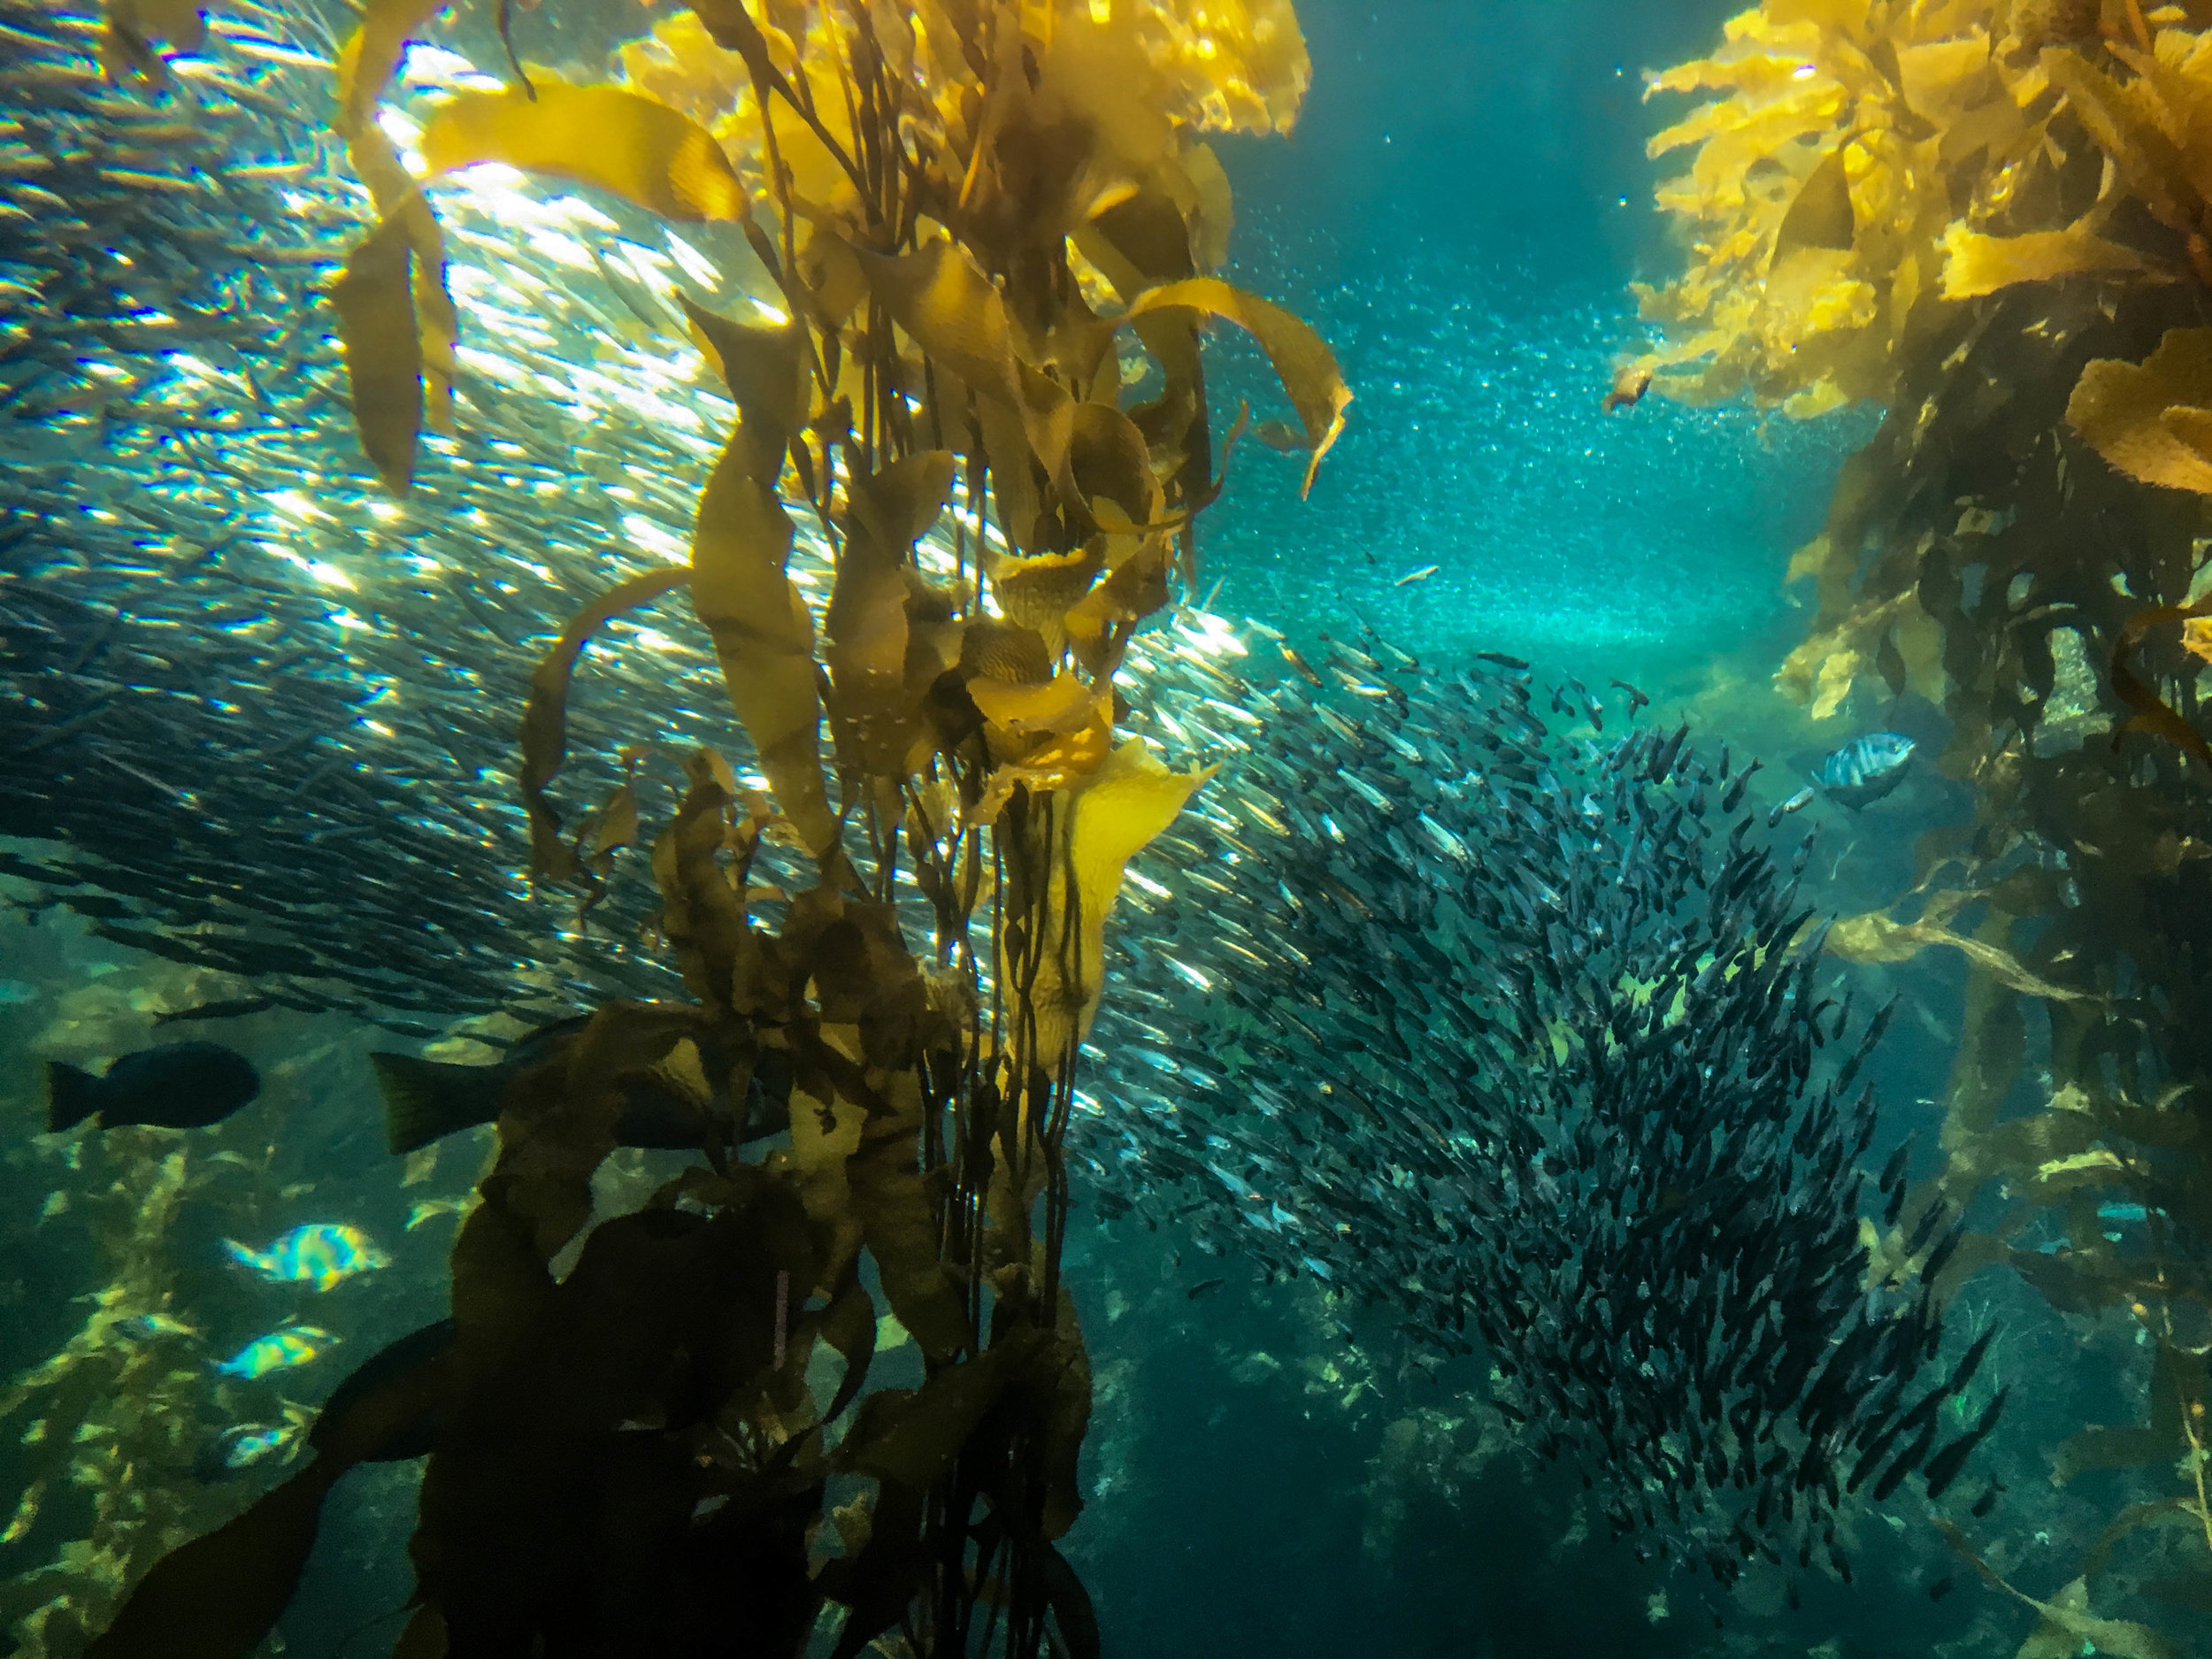 Life in the underwater forest canopy. Monterey, CA.